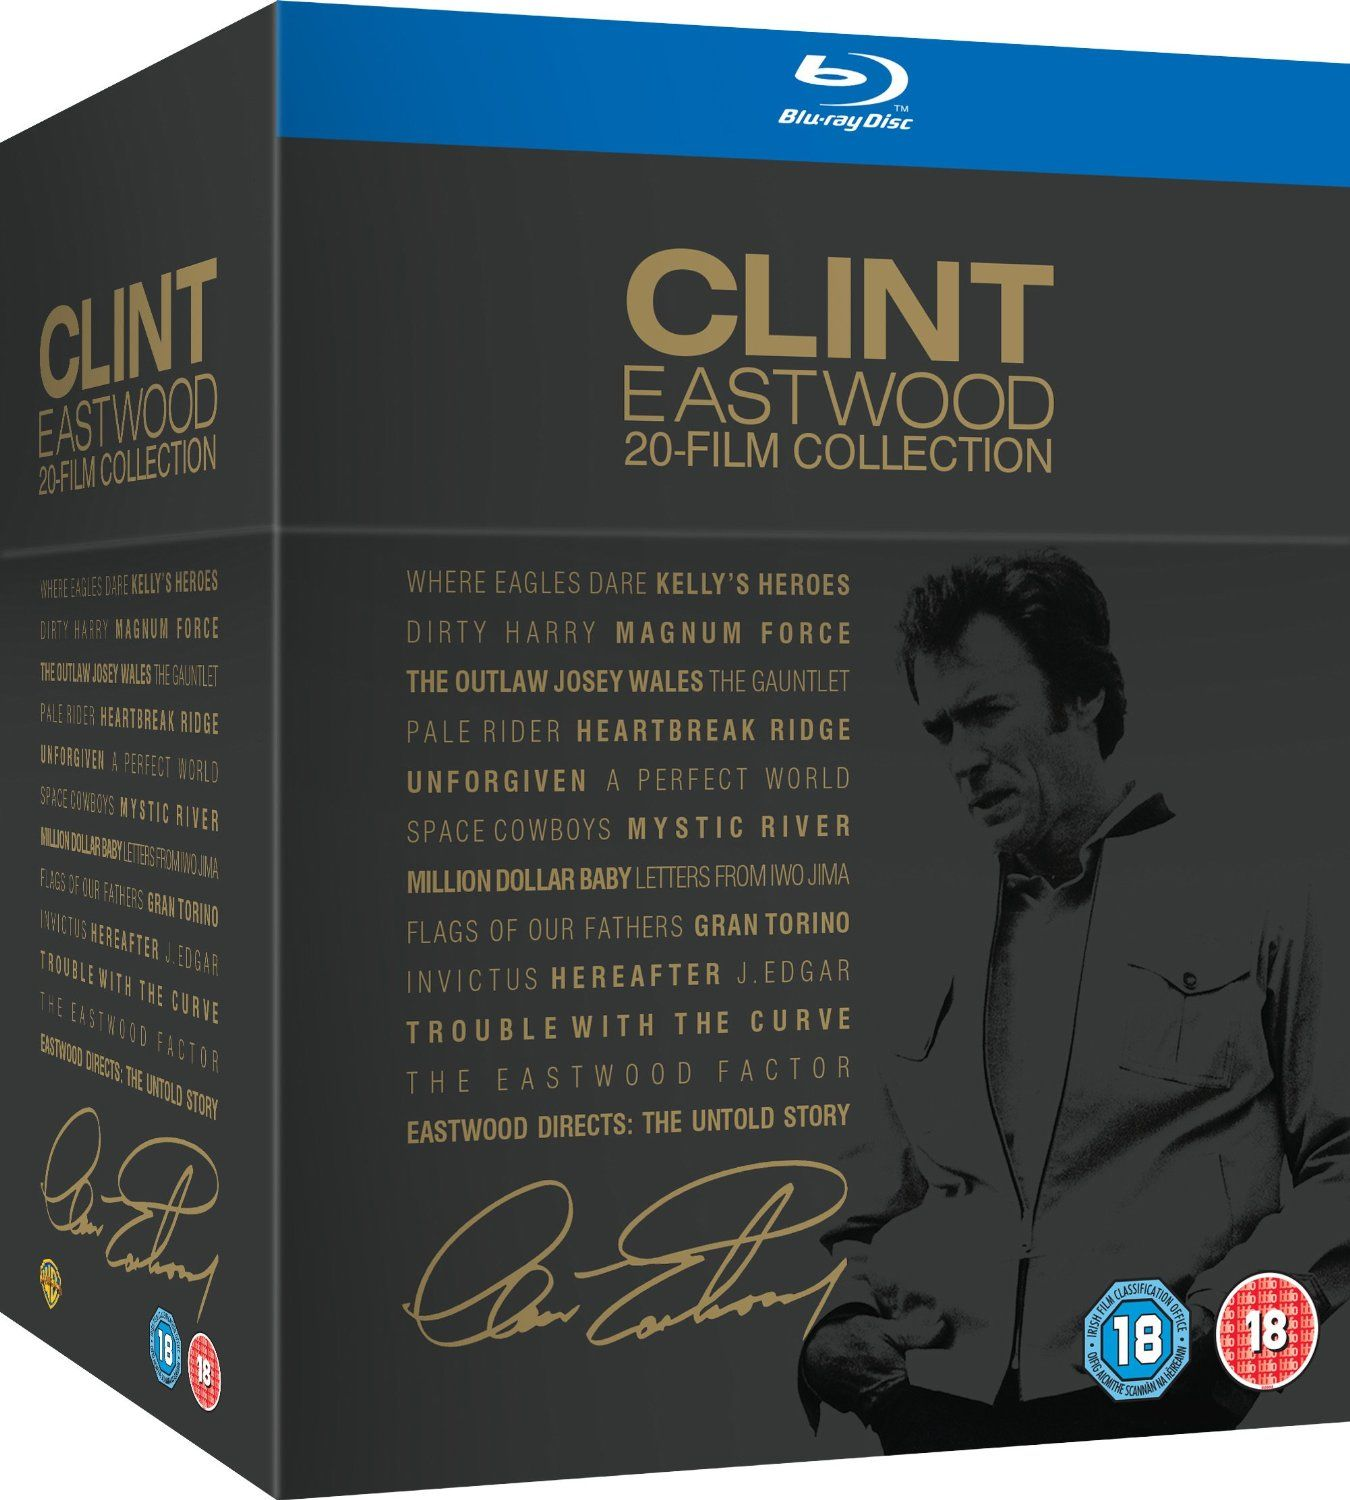 Clint Eastwood 20-Film Collection (Blu-Ray) - 1